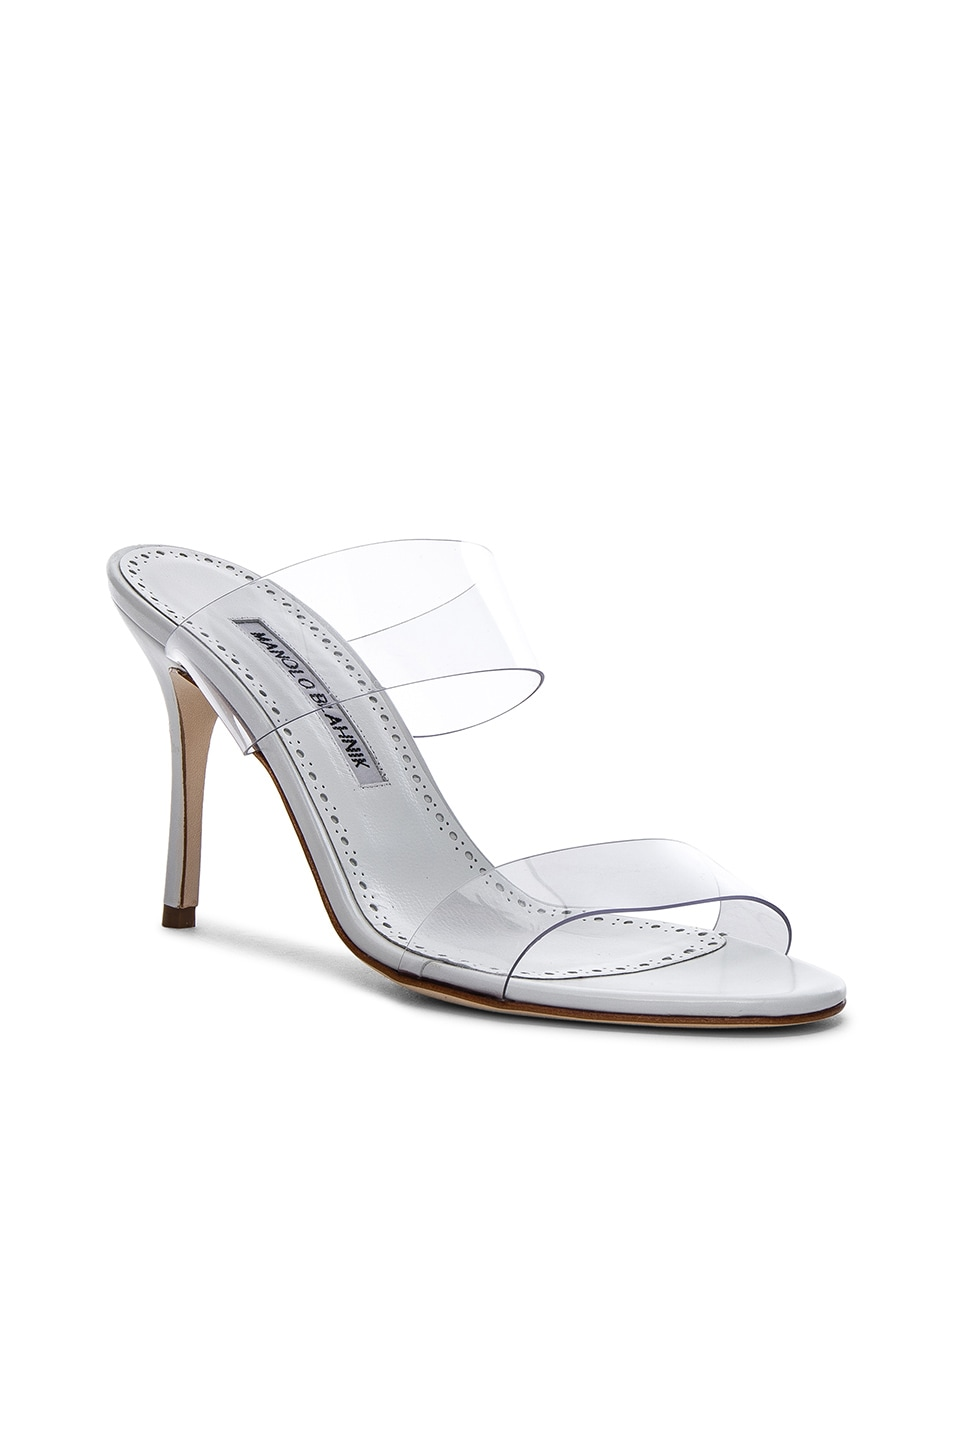 Image 2 of Manolo Blahnik PVC Scolto Sandals in White Leather